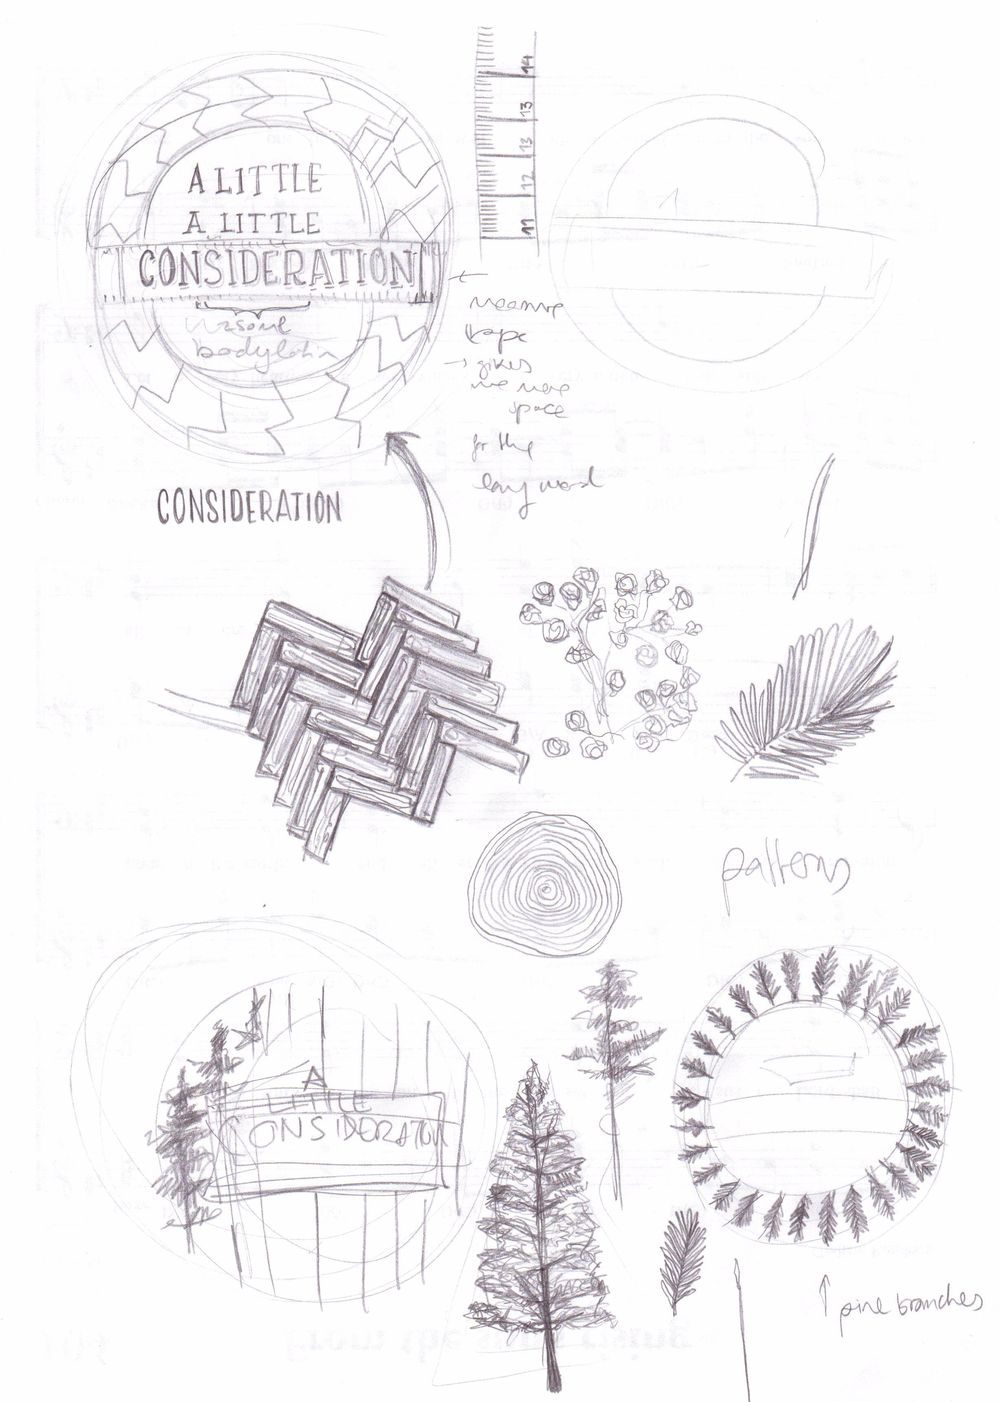 A Little Consideration - image 2 - student project